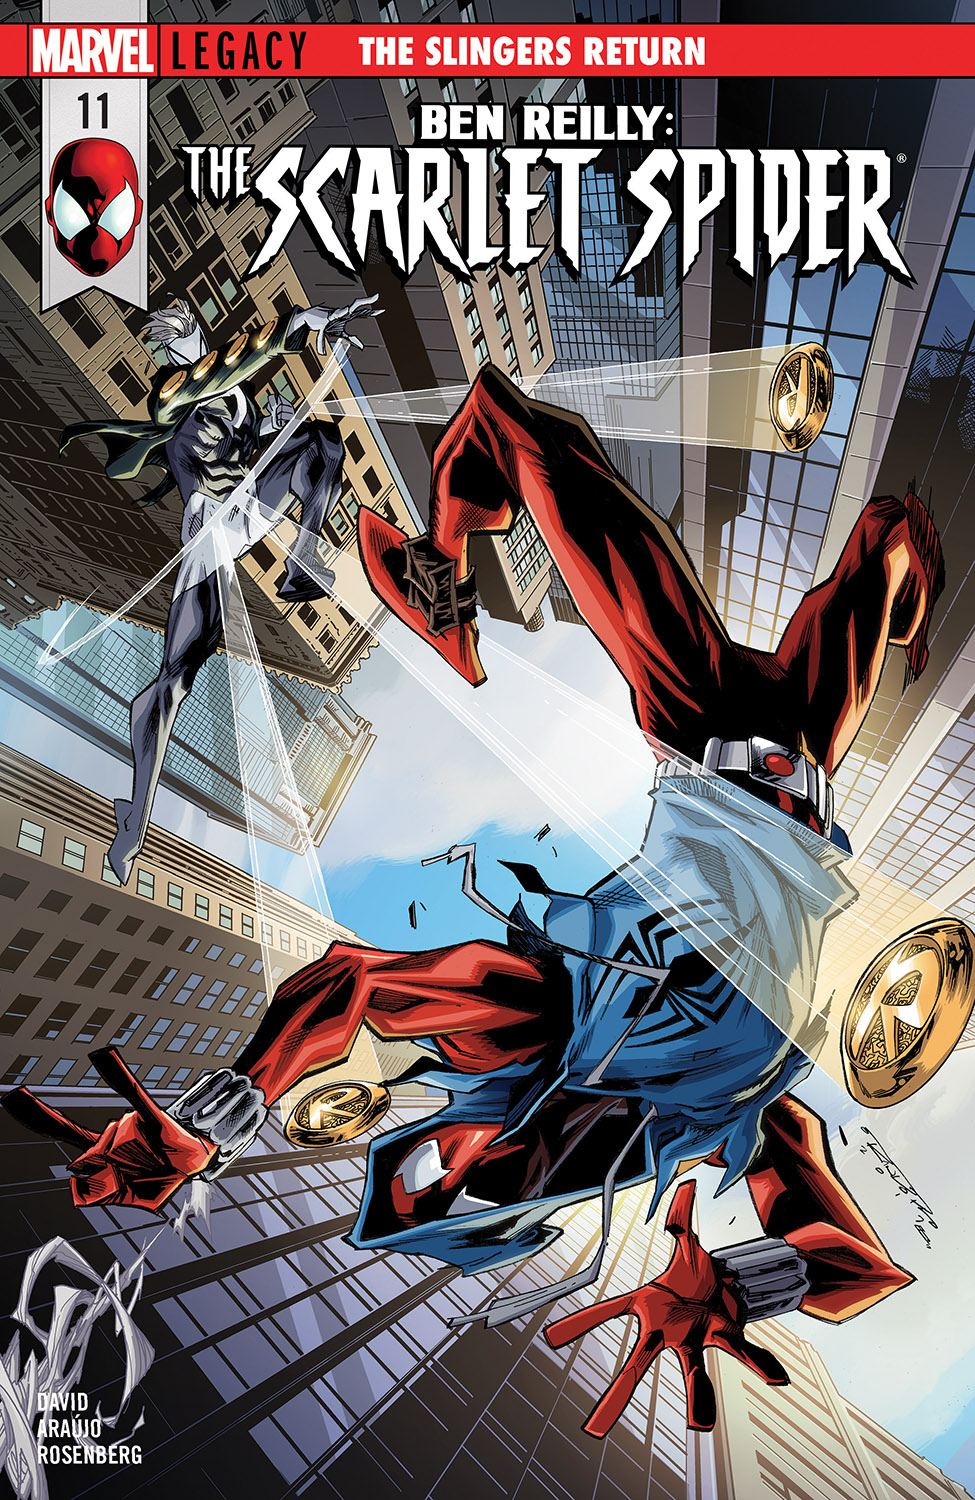 Ben Reilly: Scarlet Spider (2017) #11